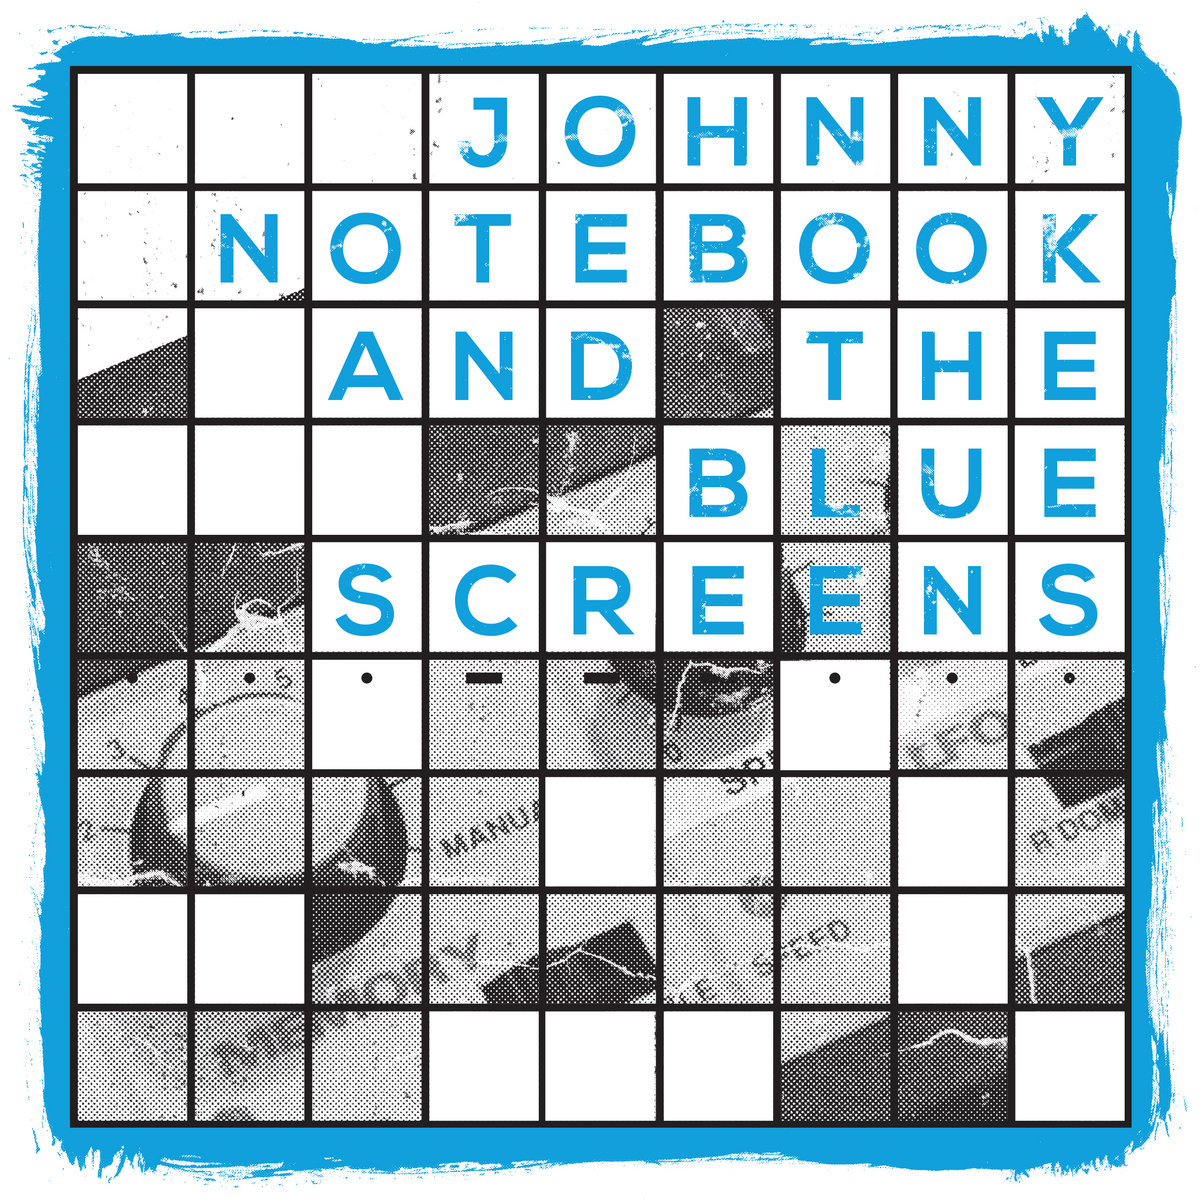 Johnny Notebook - s:t